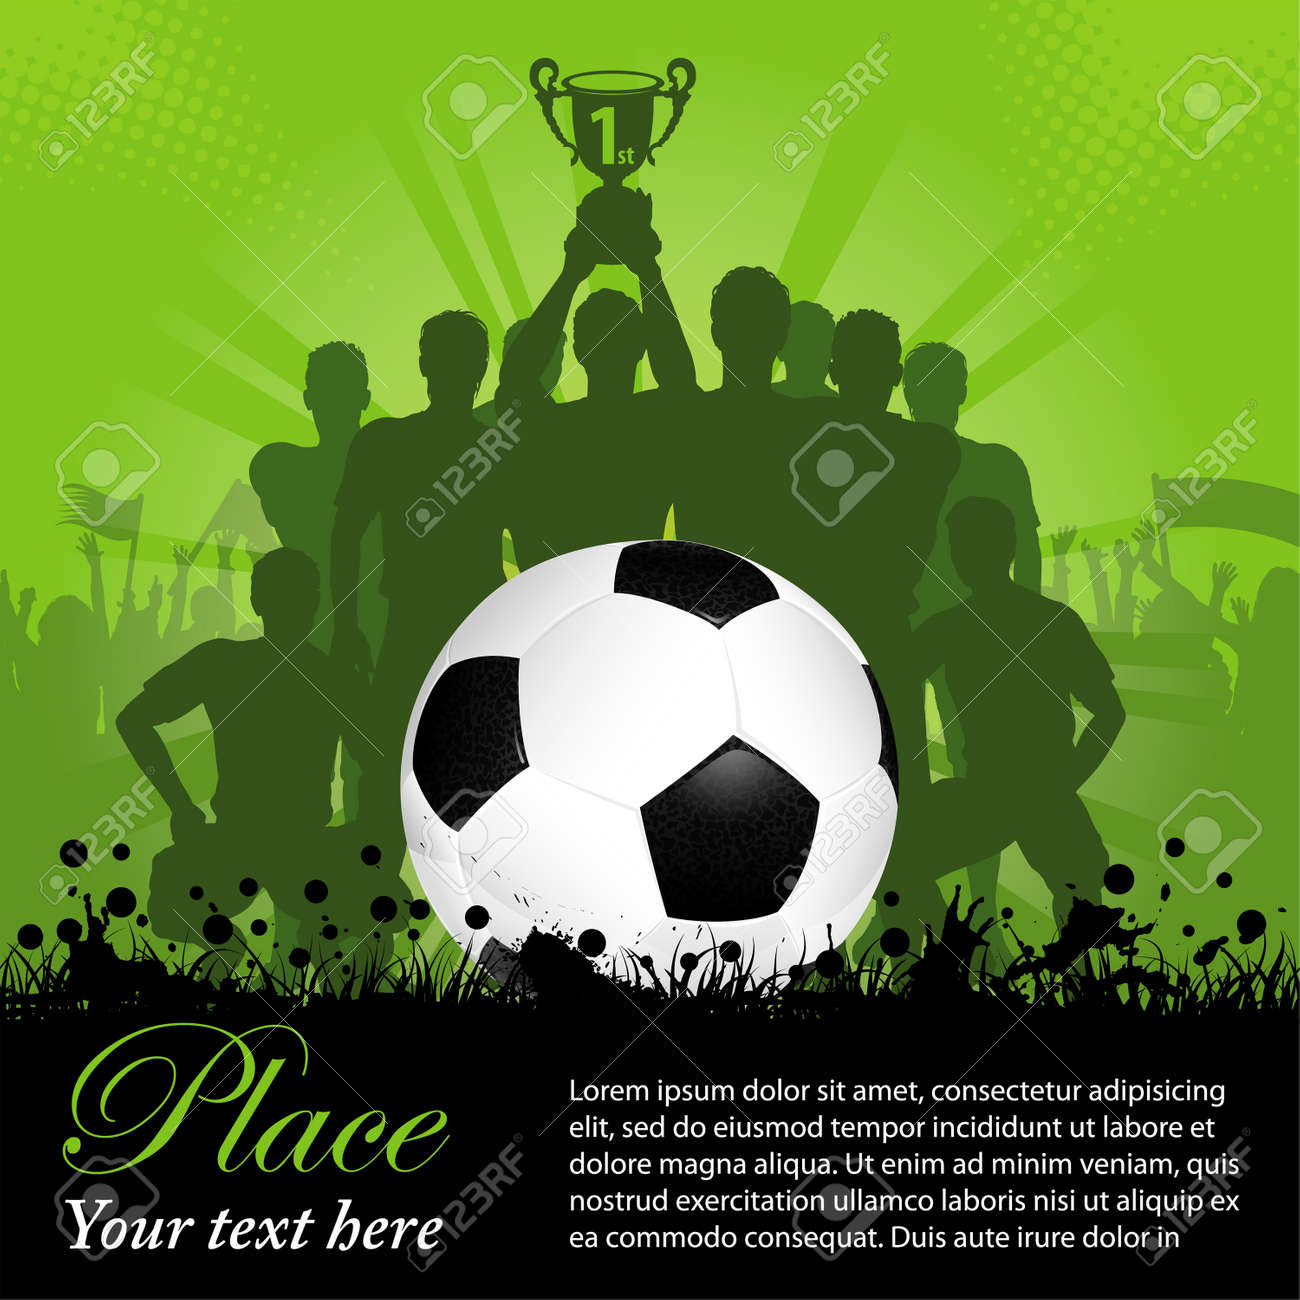 Soccer Poster with Winning Football Team with the Cup in his hands and Fans, illustration Stock Vector - 13023864